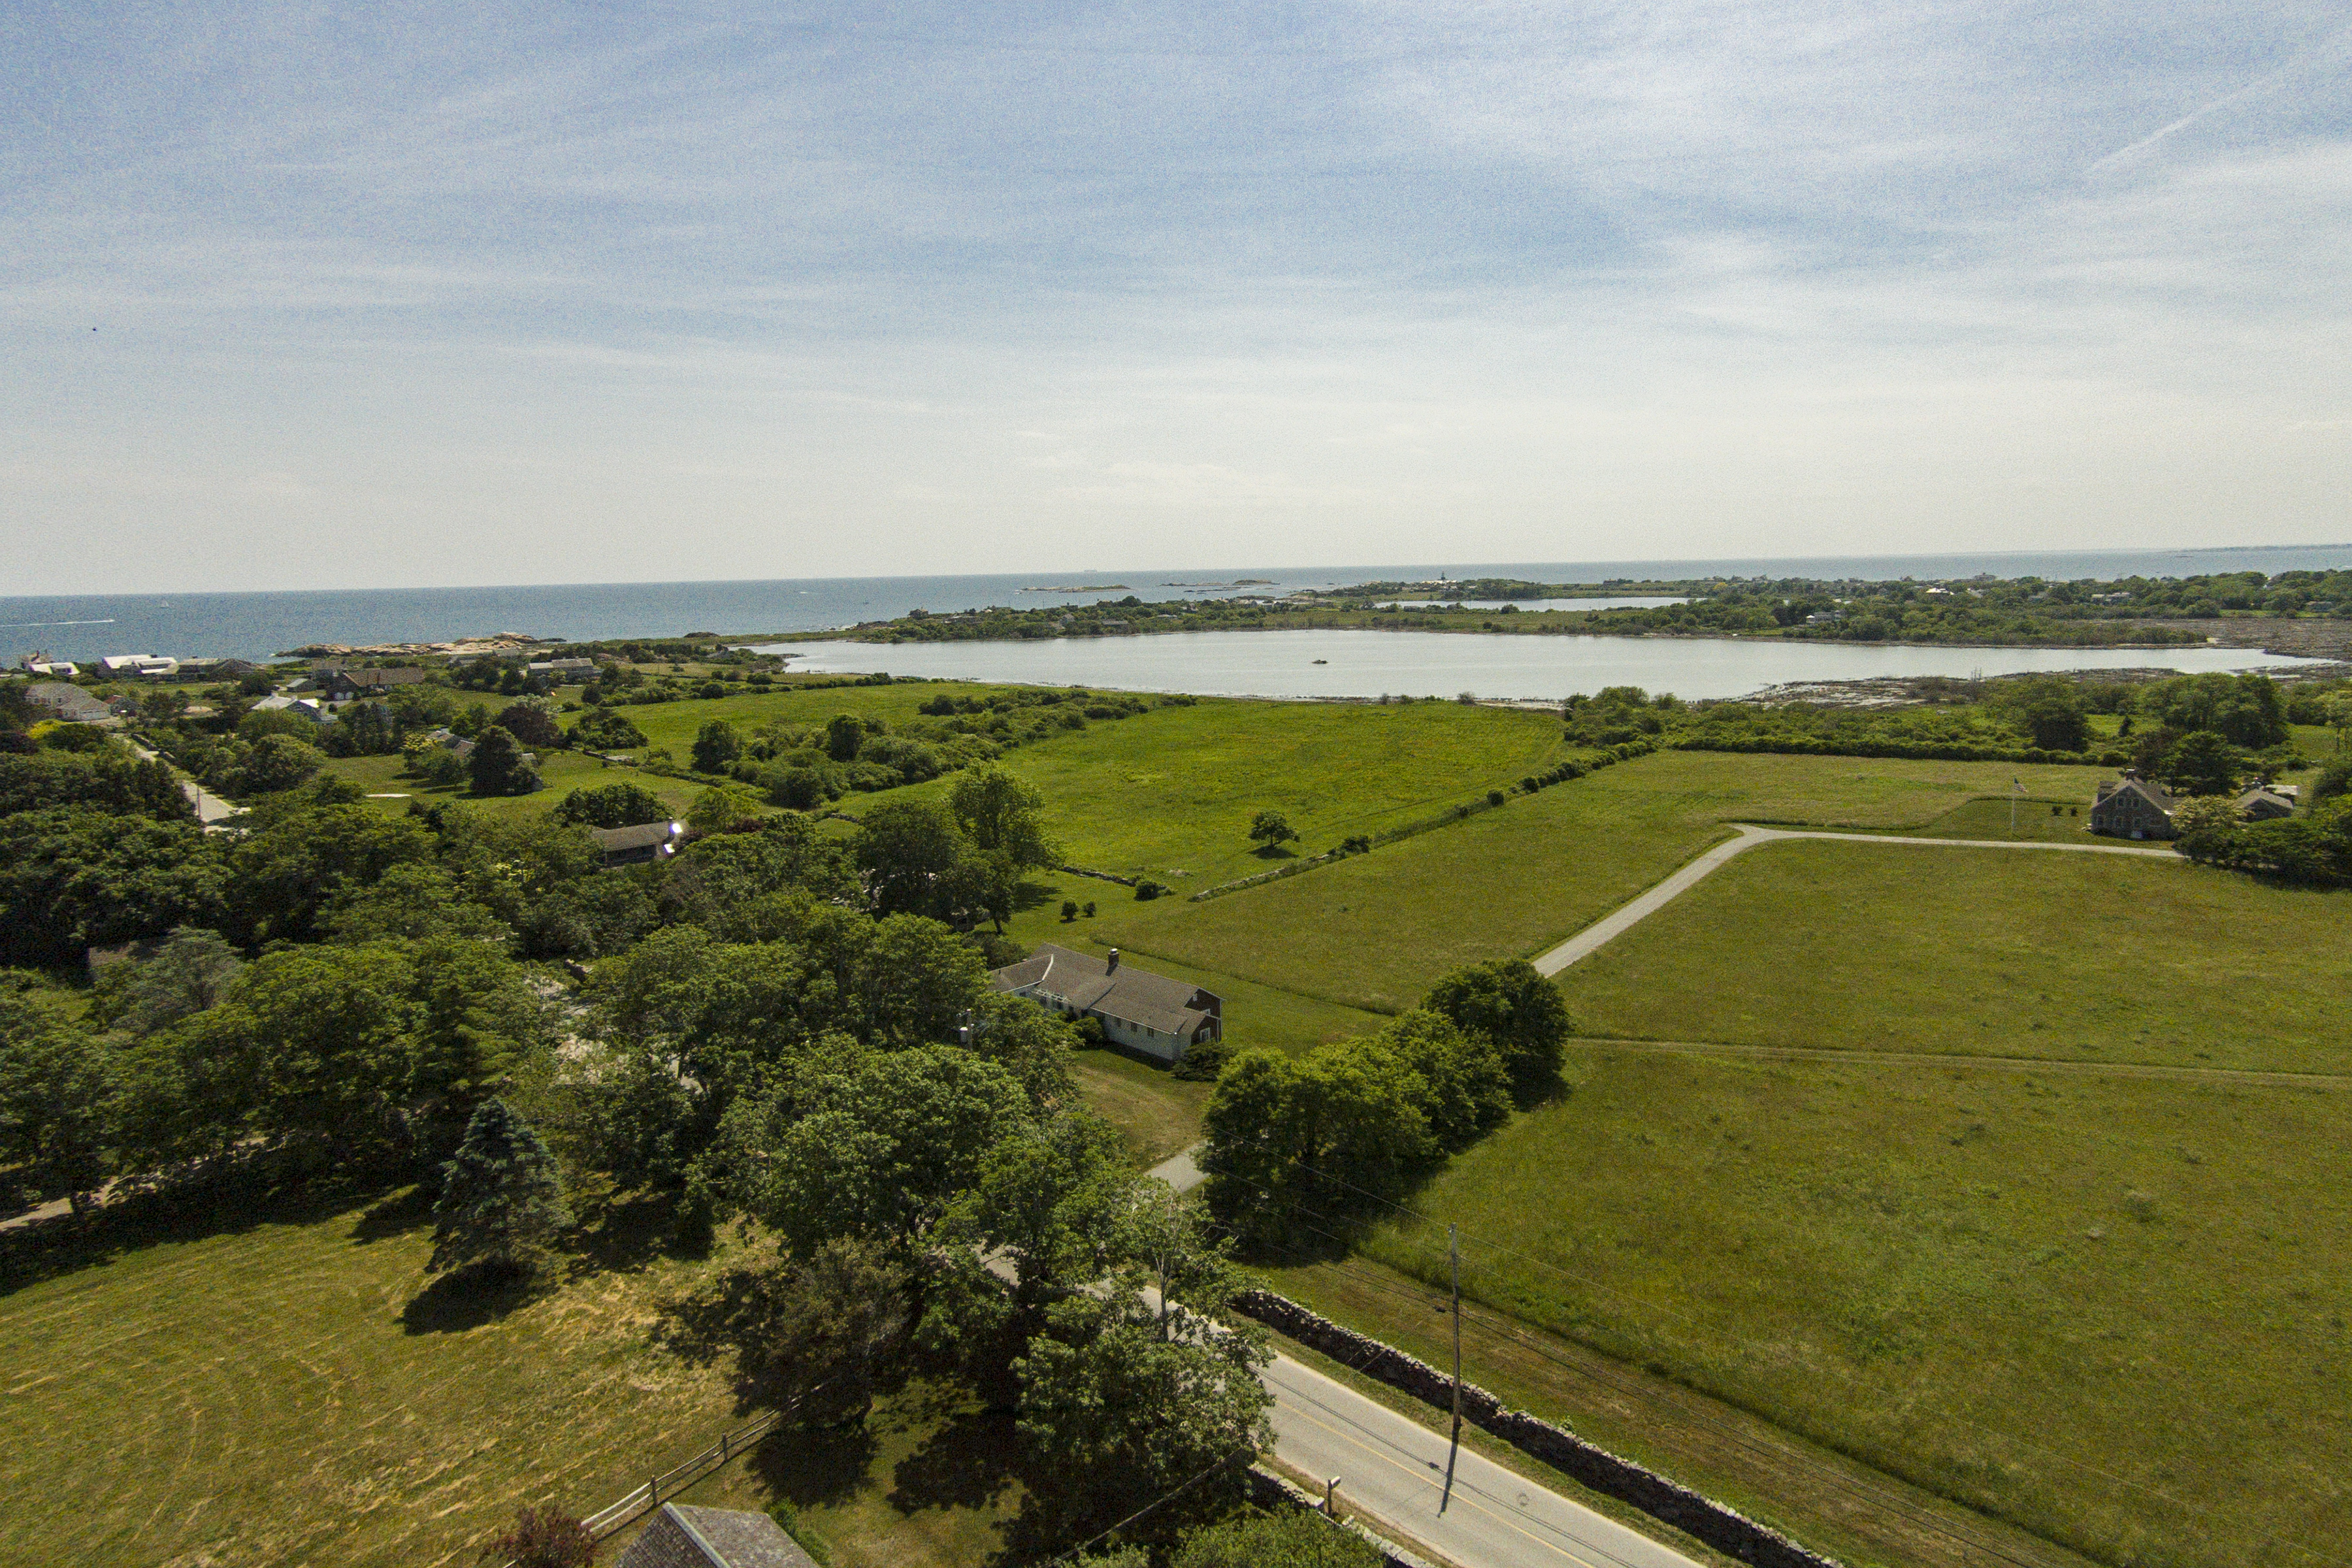 Land for Sale at 67 Warren's Point Rd, Little Compton, RI Little Compton, Rhode Island 02837 United States